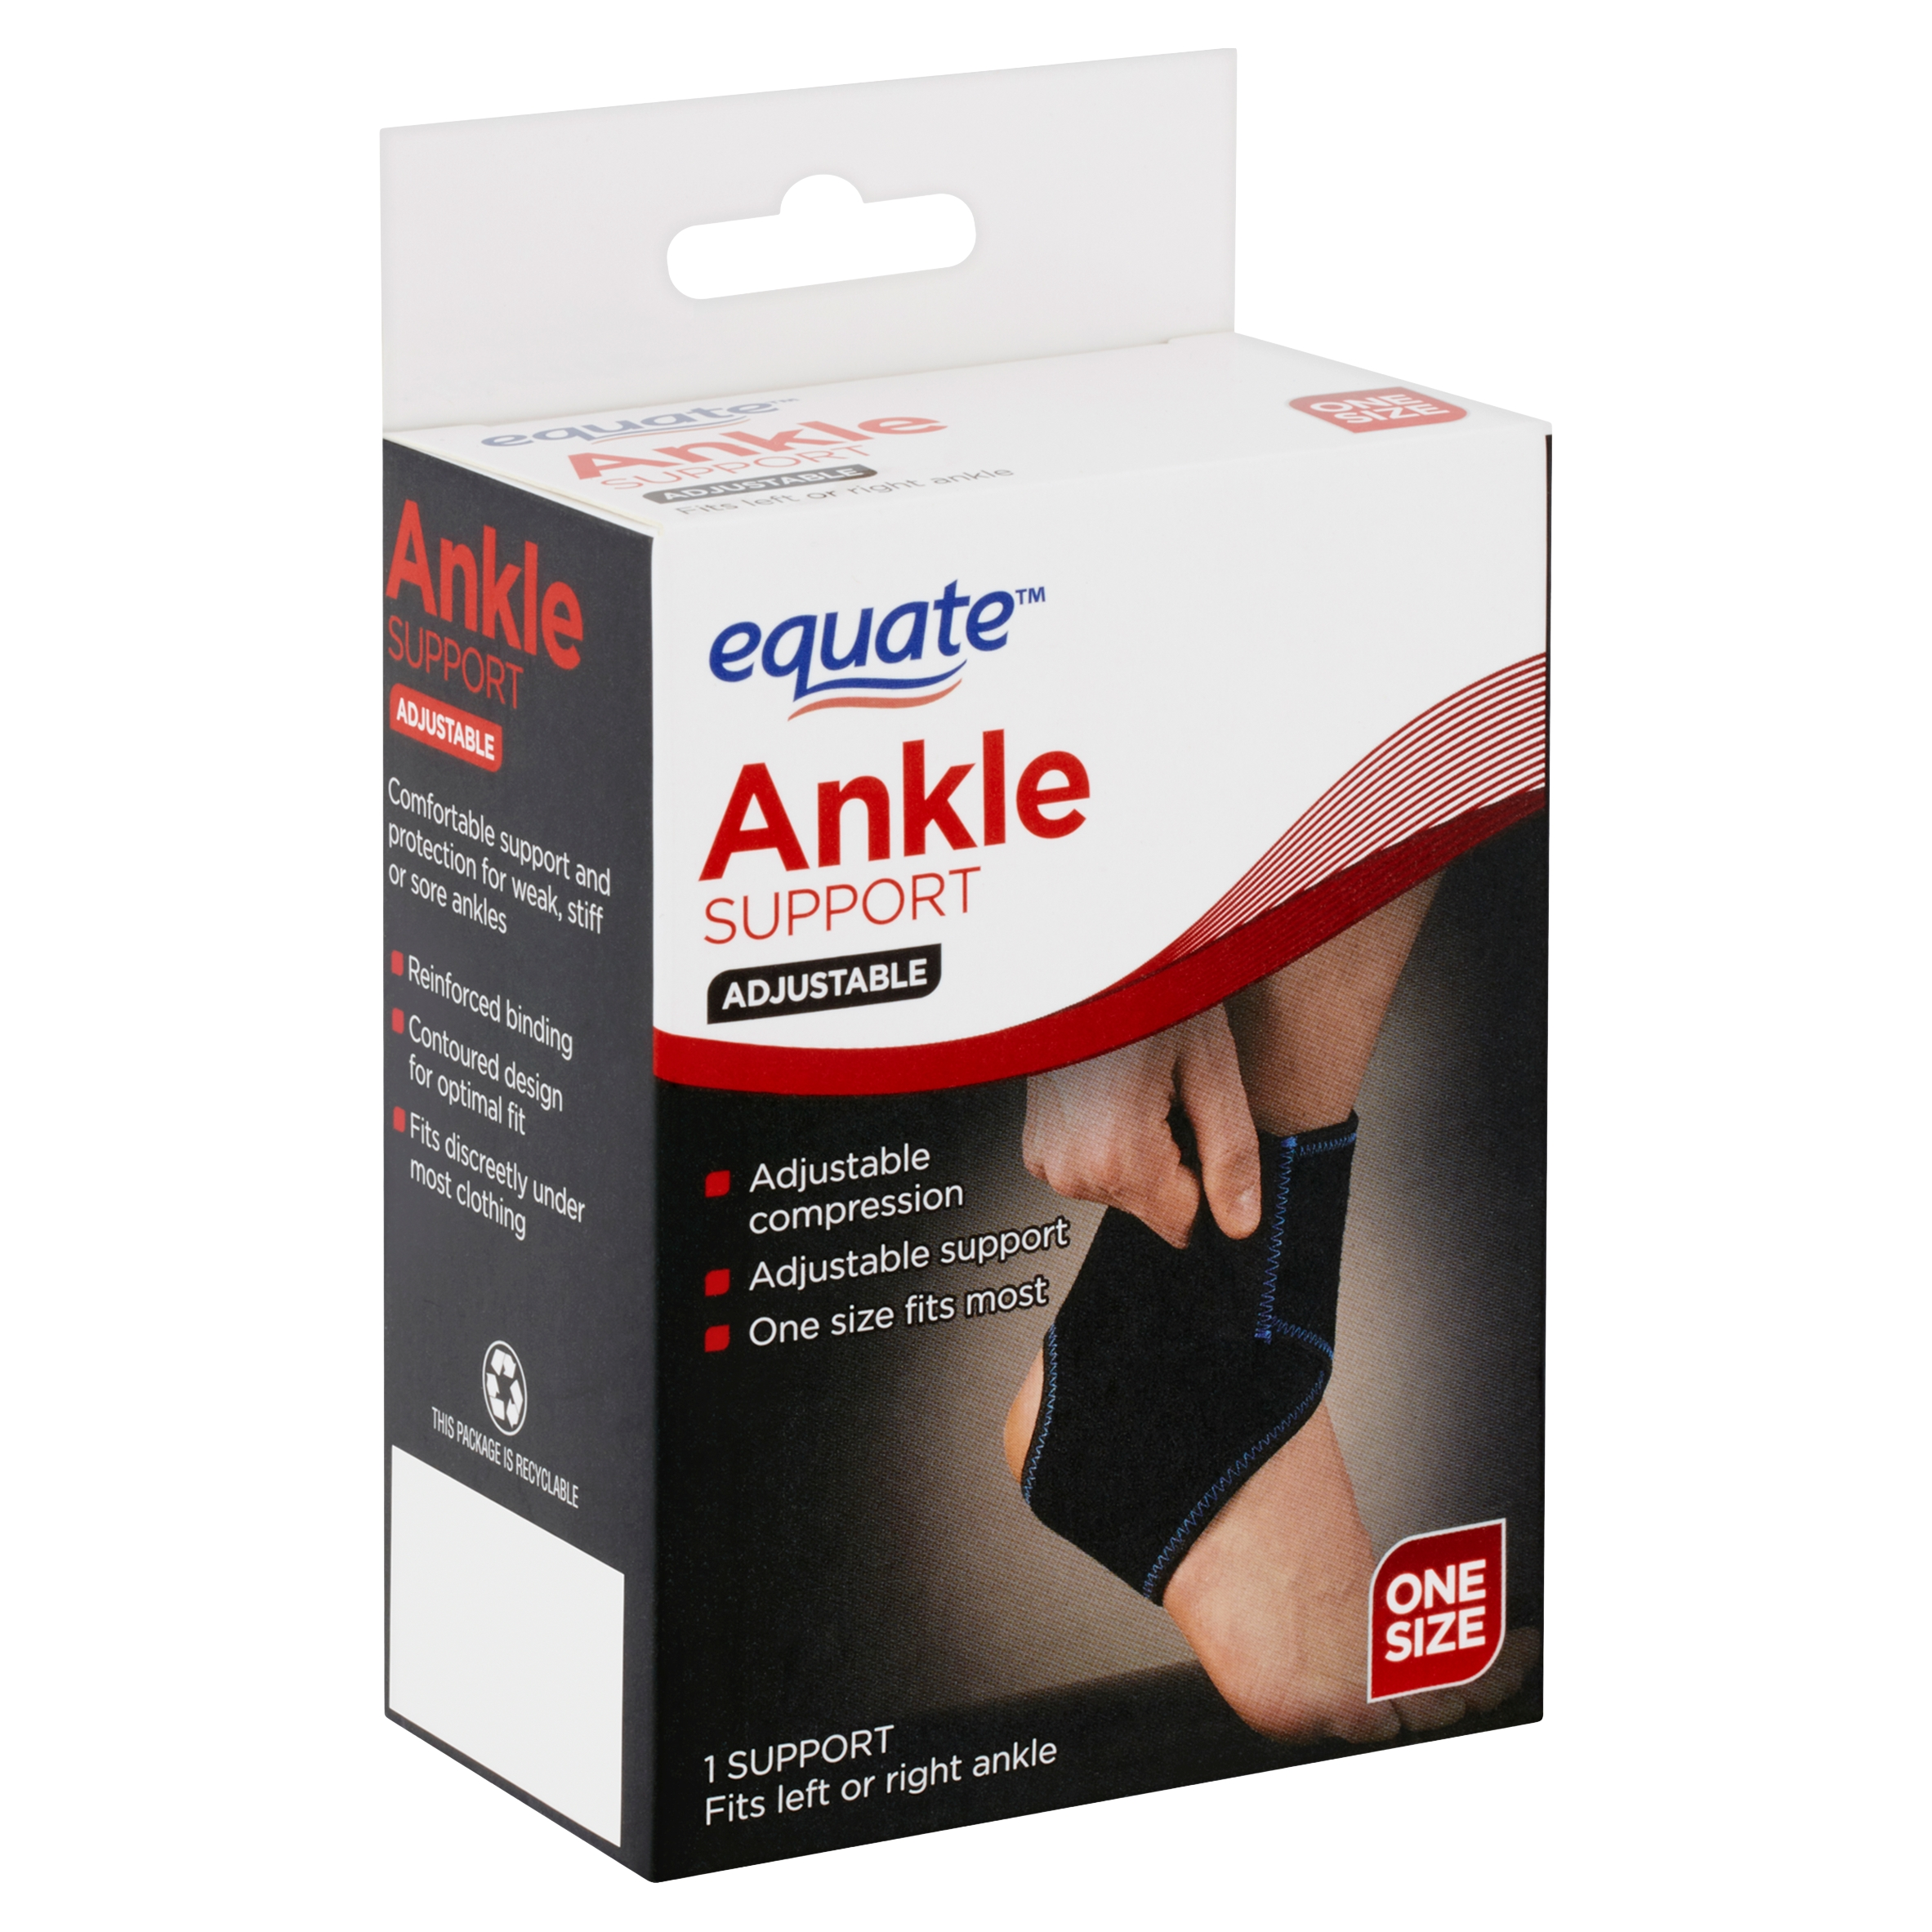 Equate Adjustable One Size Ankle Support